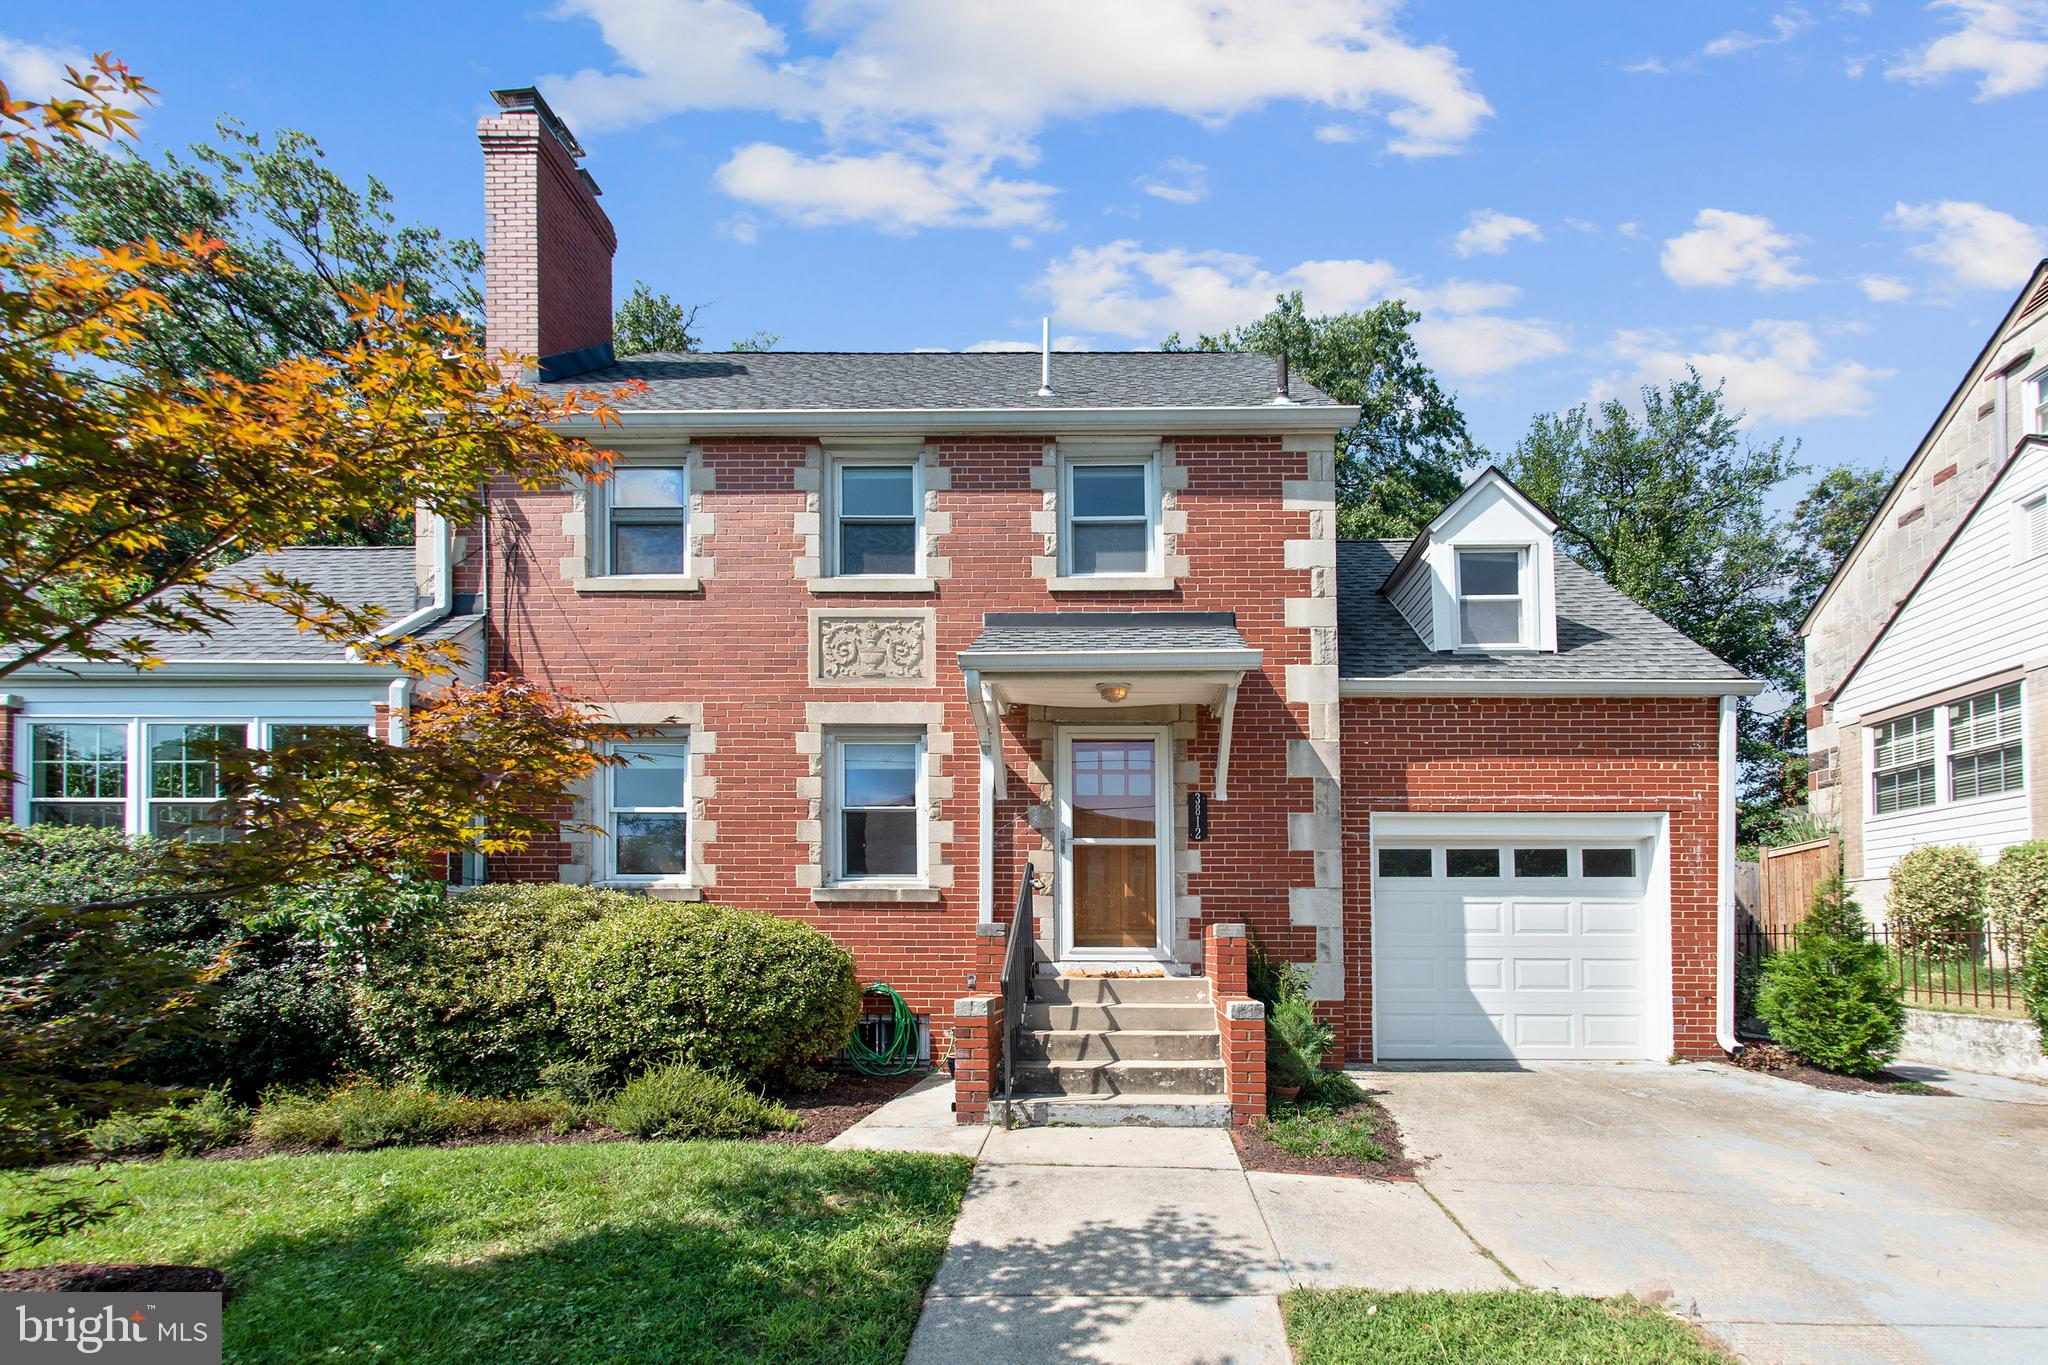 Step inside this 4BD/2.5BA red-brick beauty in the heart of Brookland! Main level includes a renovated side porch that's the perfect office or greenhouse, and open renovated kitchen with breakfast bar. There's a master bedroom with gorgeous en-suite bathroom on the upper level, as well as a bedroom up in the finished attic. Basement includes an entertainment room (with fireplace), laundry, and storage. Fenced-in backyard perfect for al-fresco entertaining or relaxing. Enjoy a casual walk to the Red Line, or drive and park in your own 1-car garage. Come check out this charmer! <b>OPEN HOUSE SUN 1-4</b>